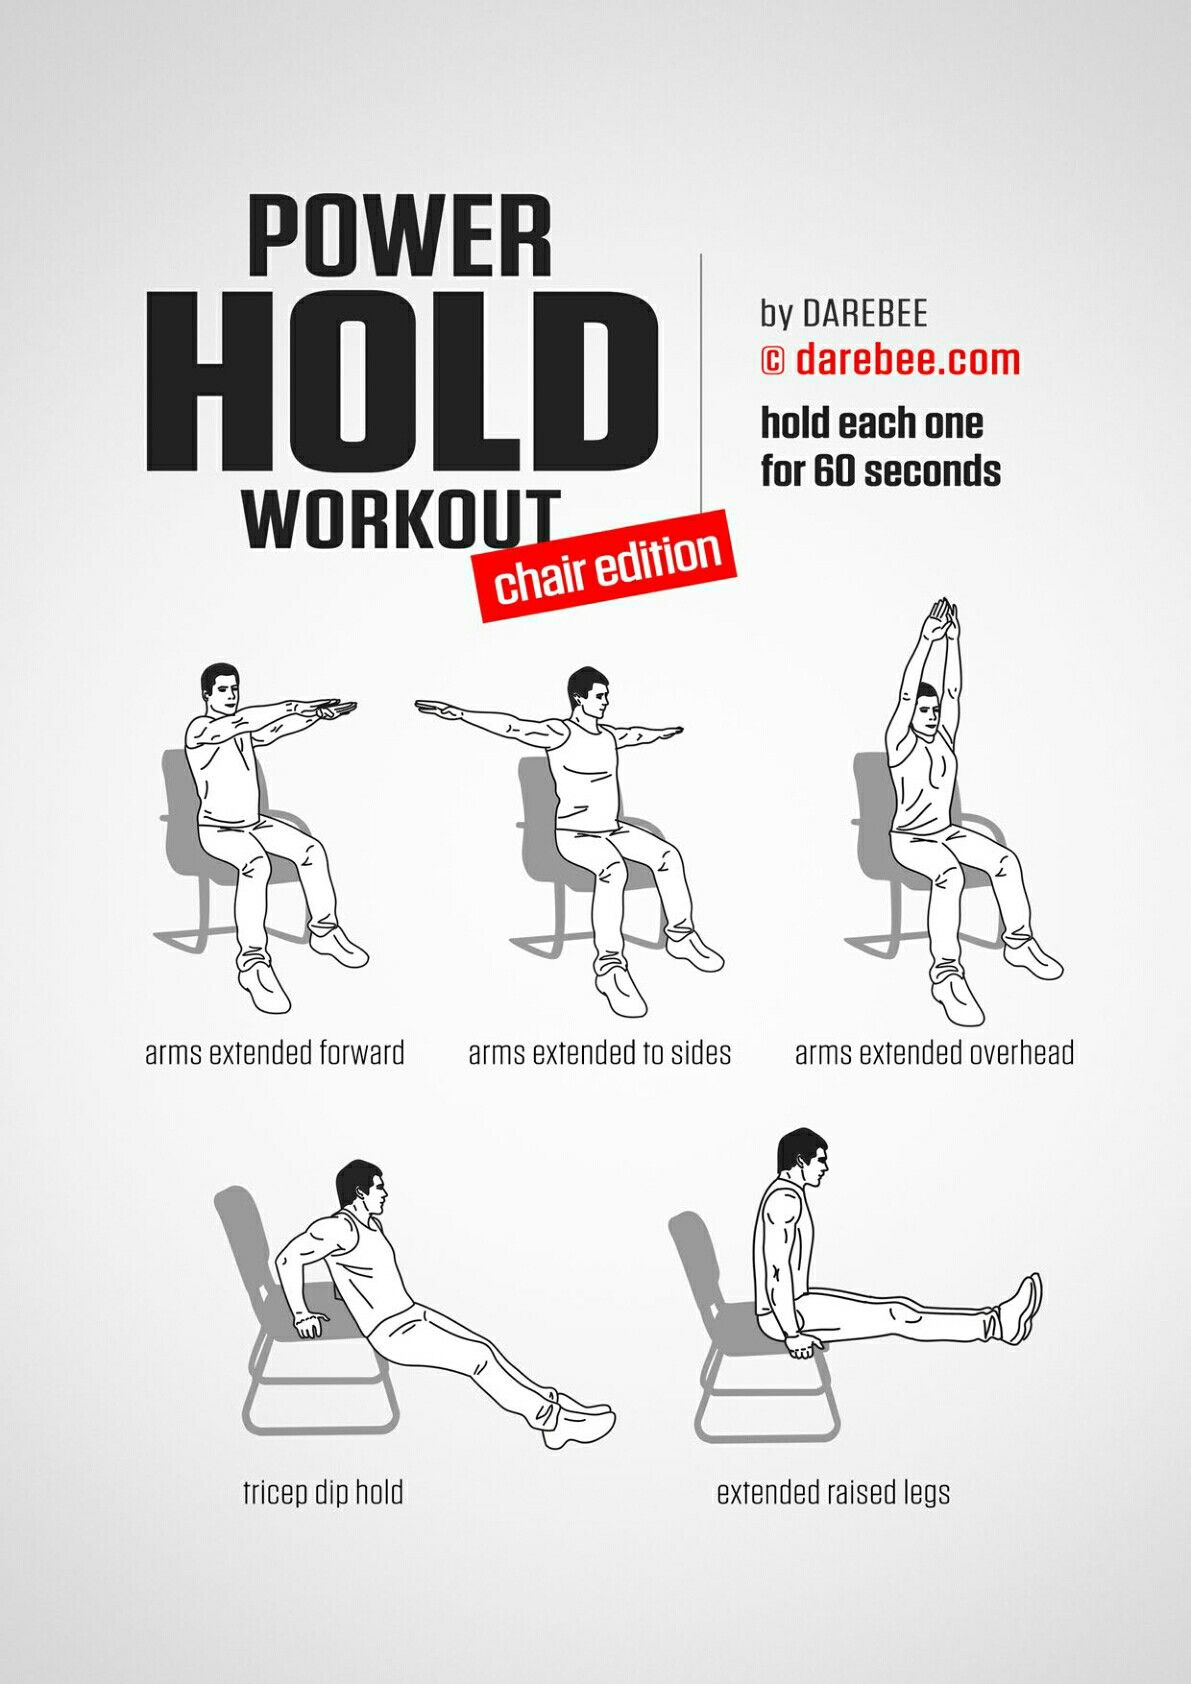 office chair exercises for abs black covers weddings power hold workout posted by advancedweightlosstips